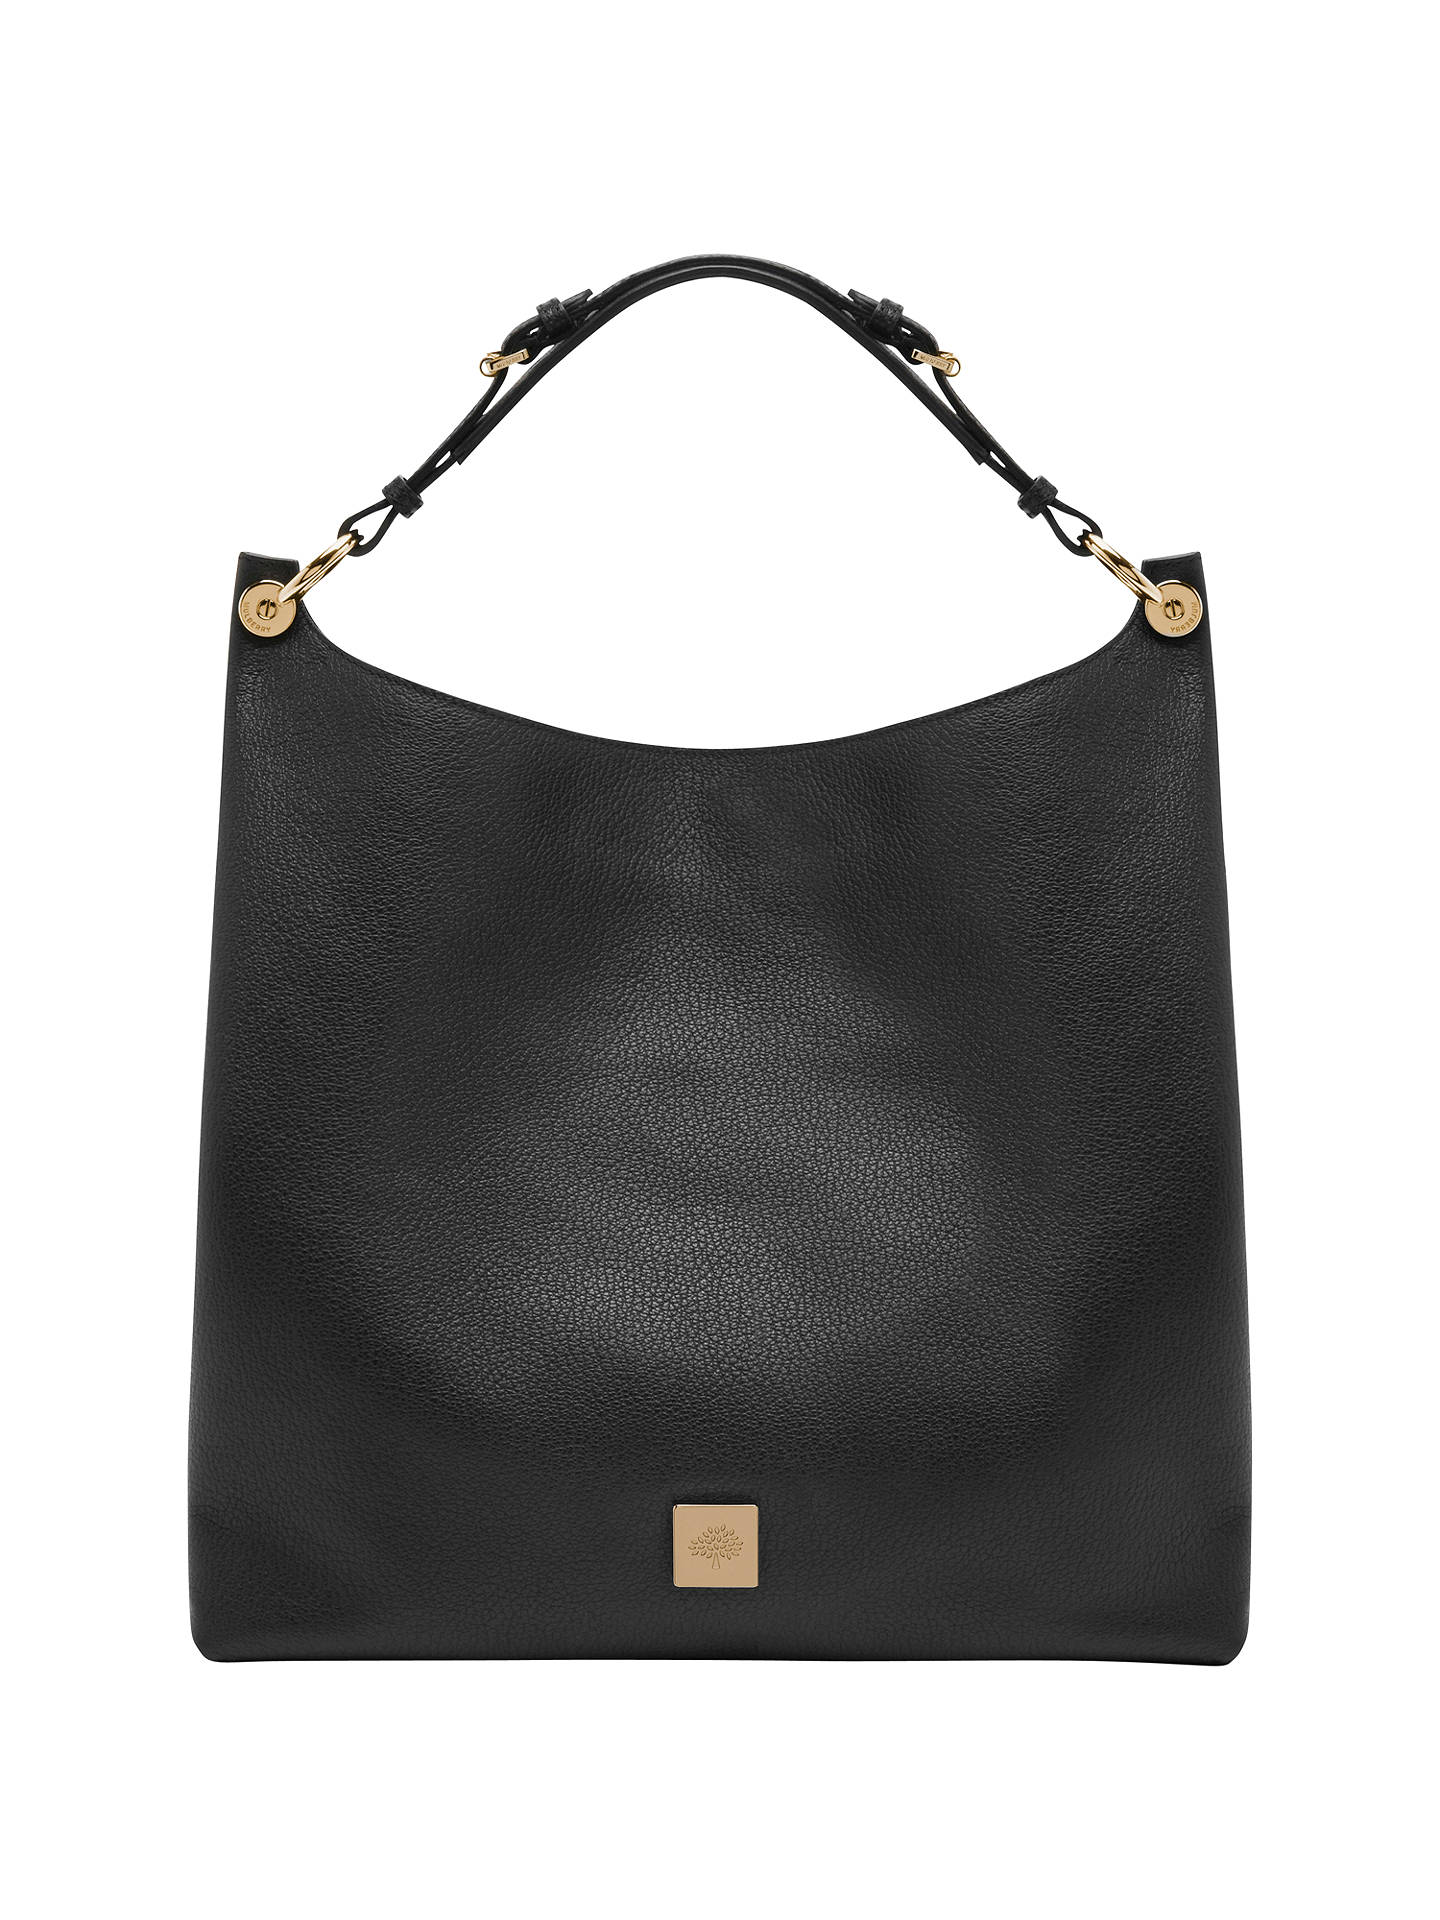 on feet at cheapest price release date: Mulberry Freya Leather Hobo Bag at John Lewis & Partners